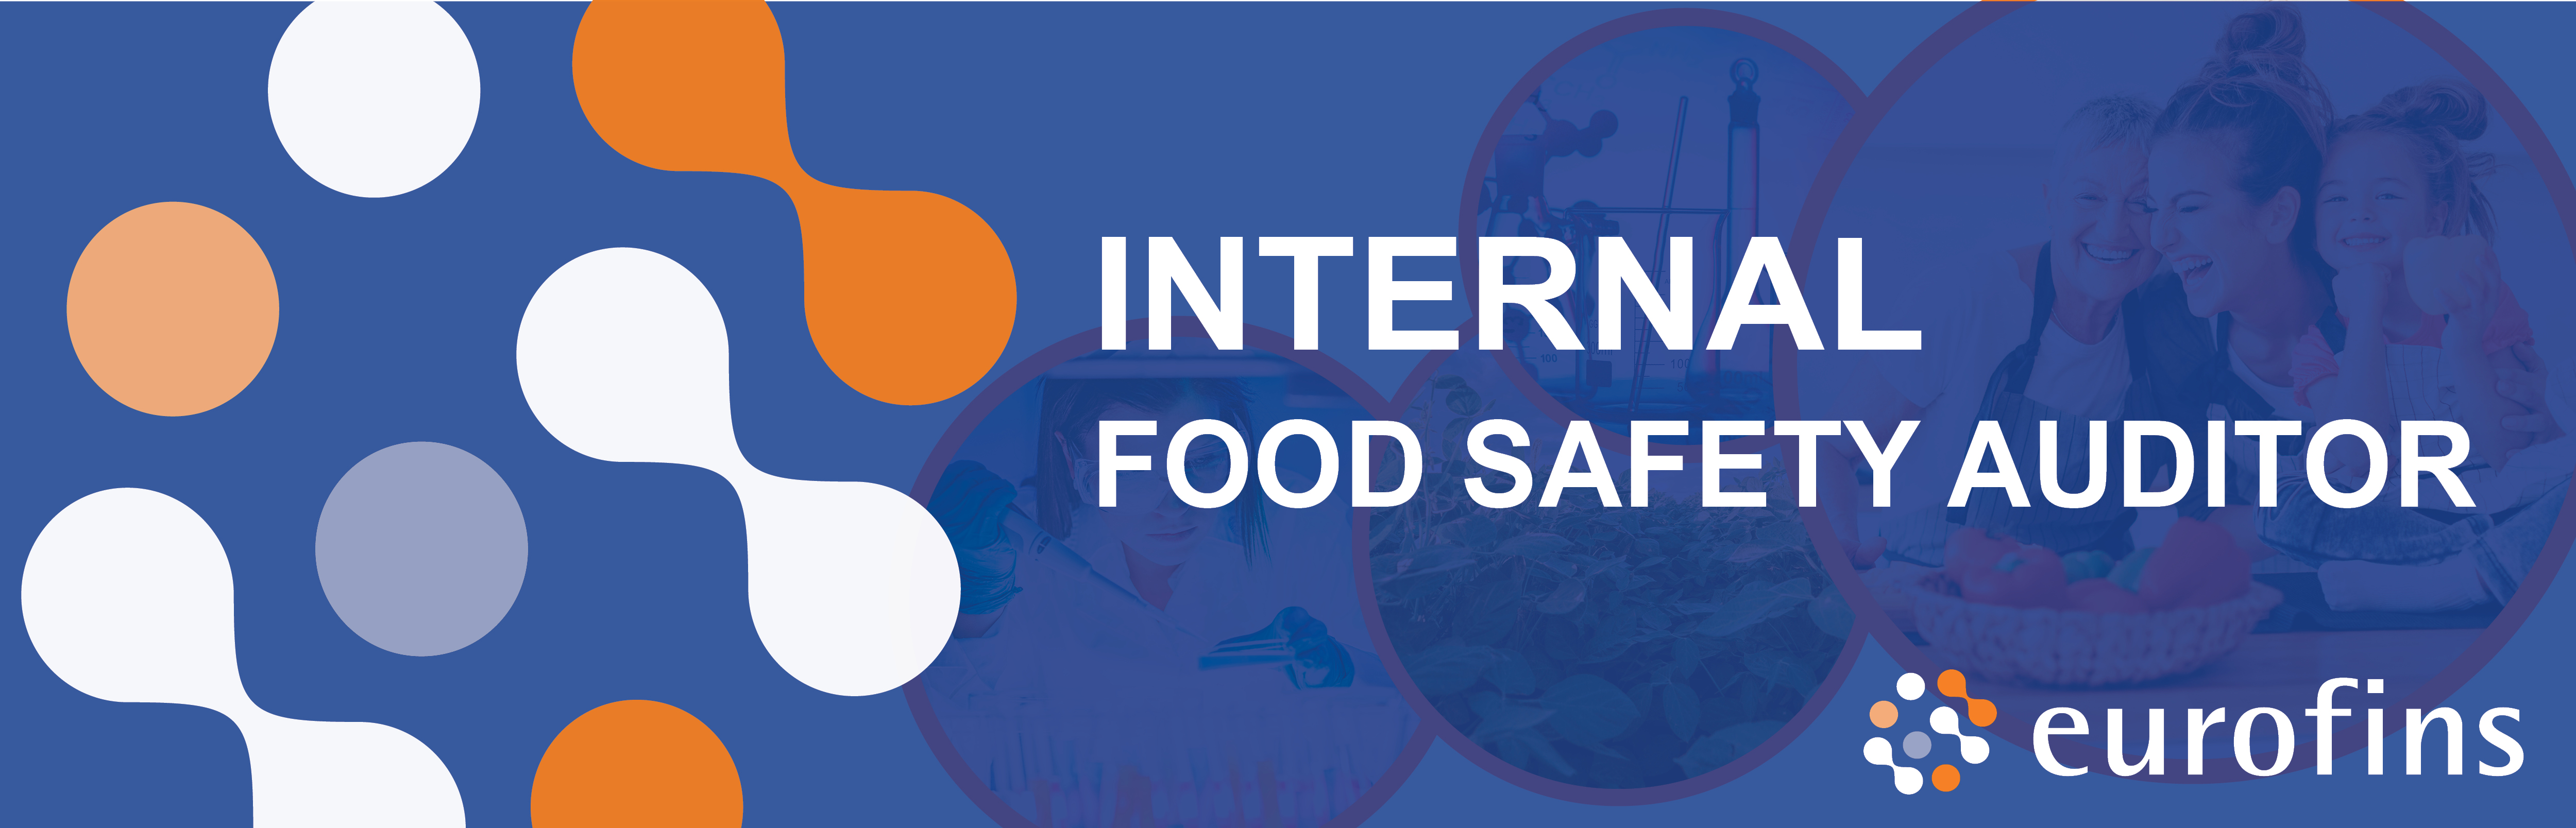 Internal Food Safety Auditor Training